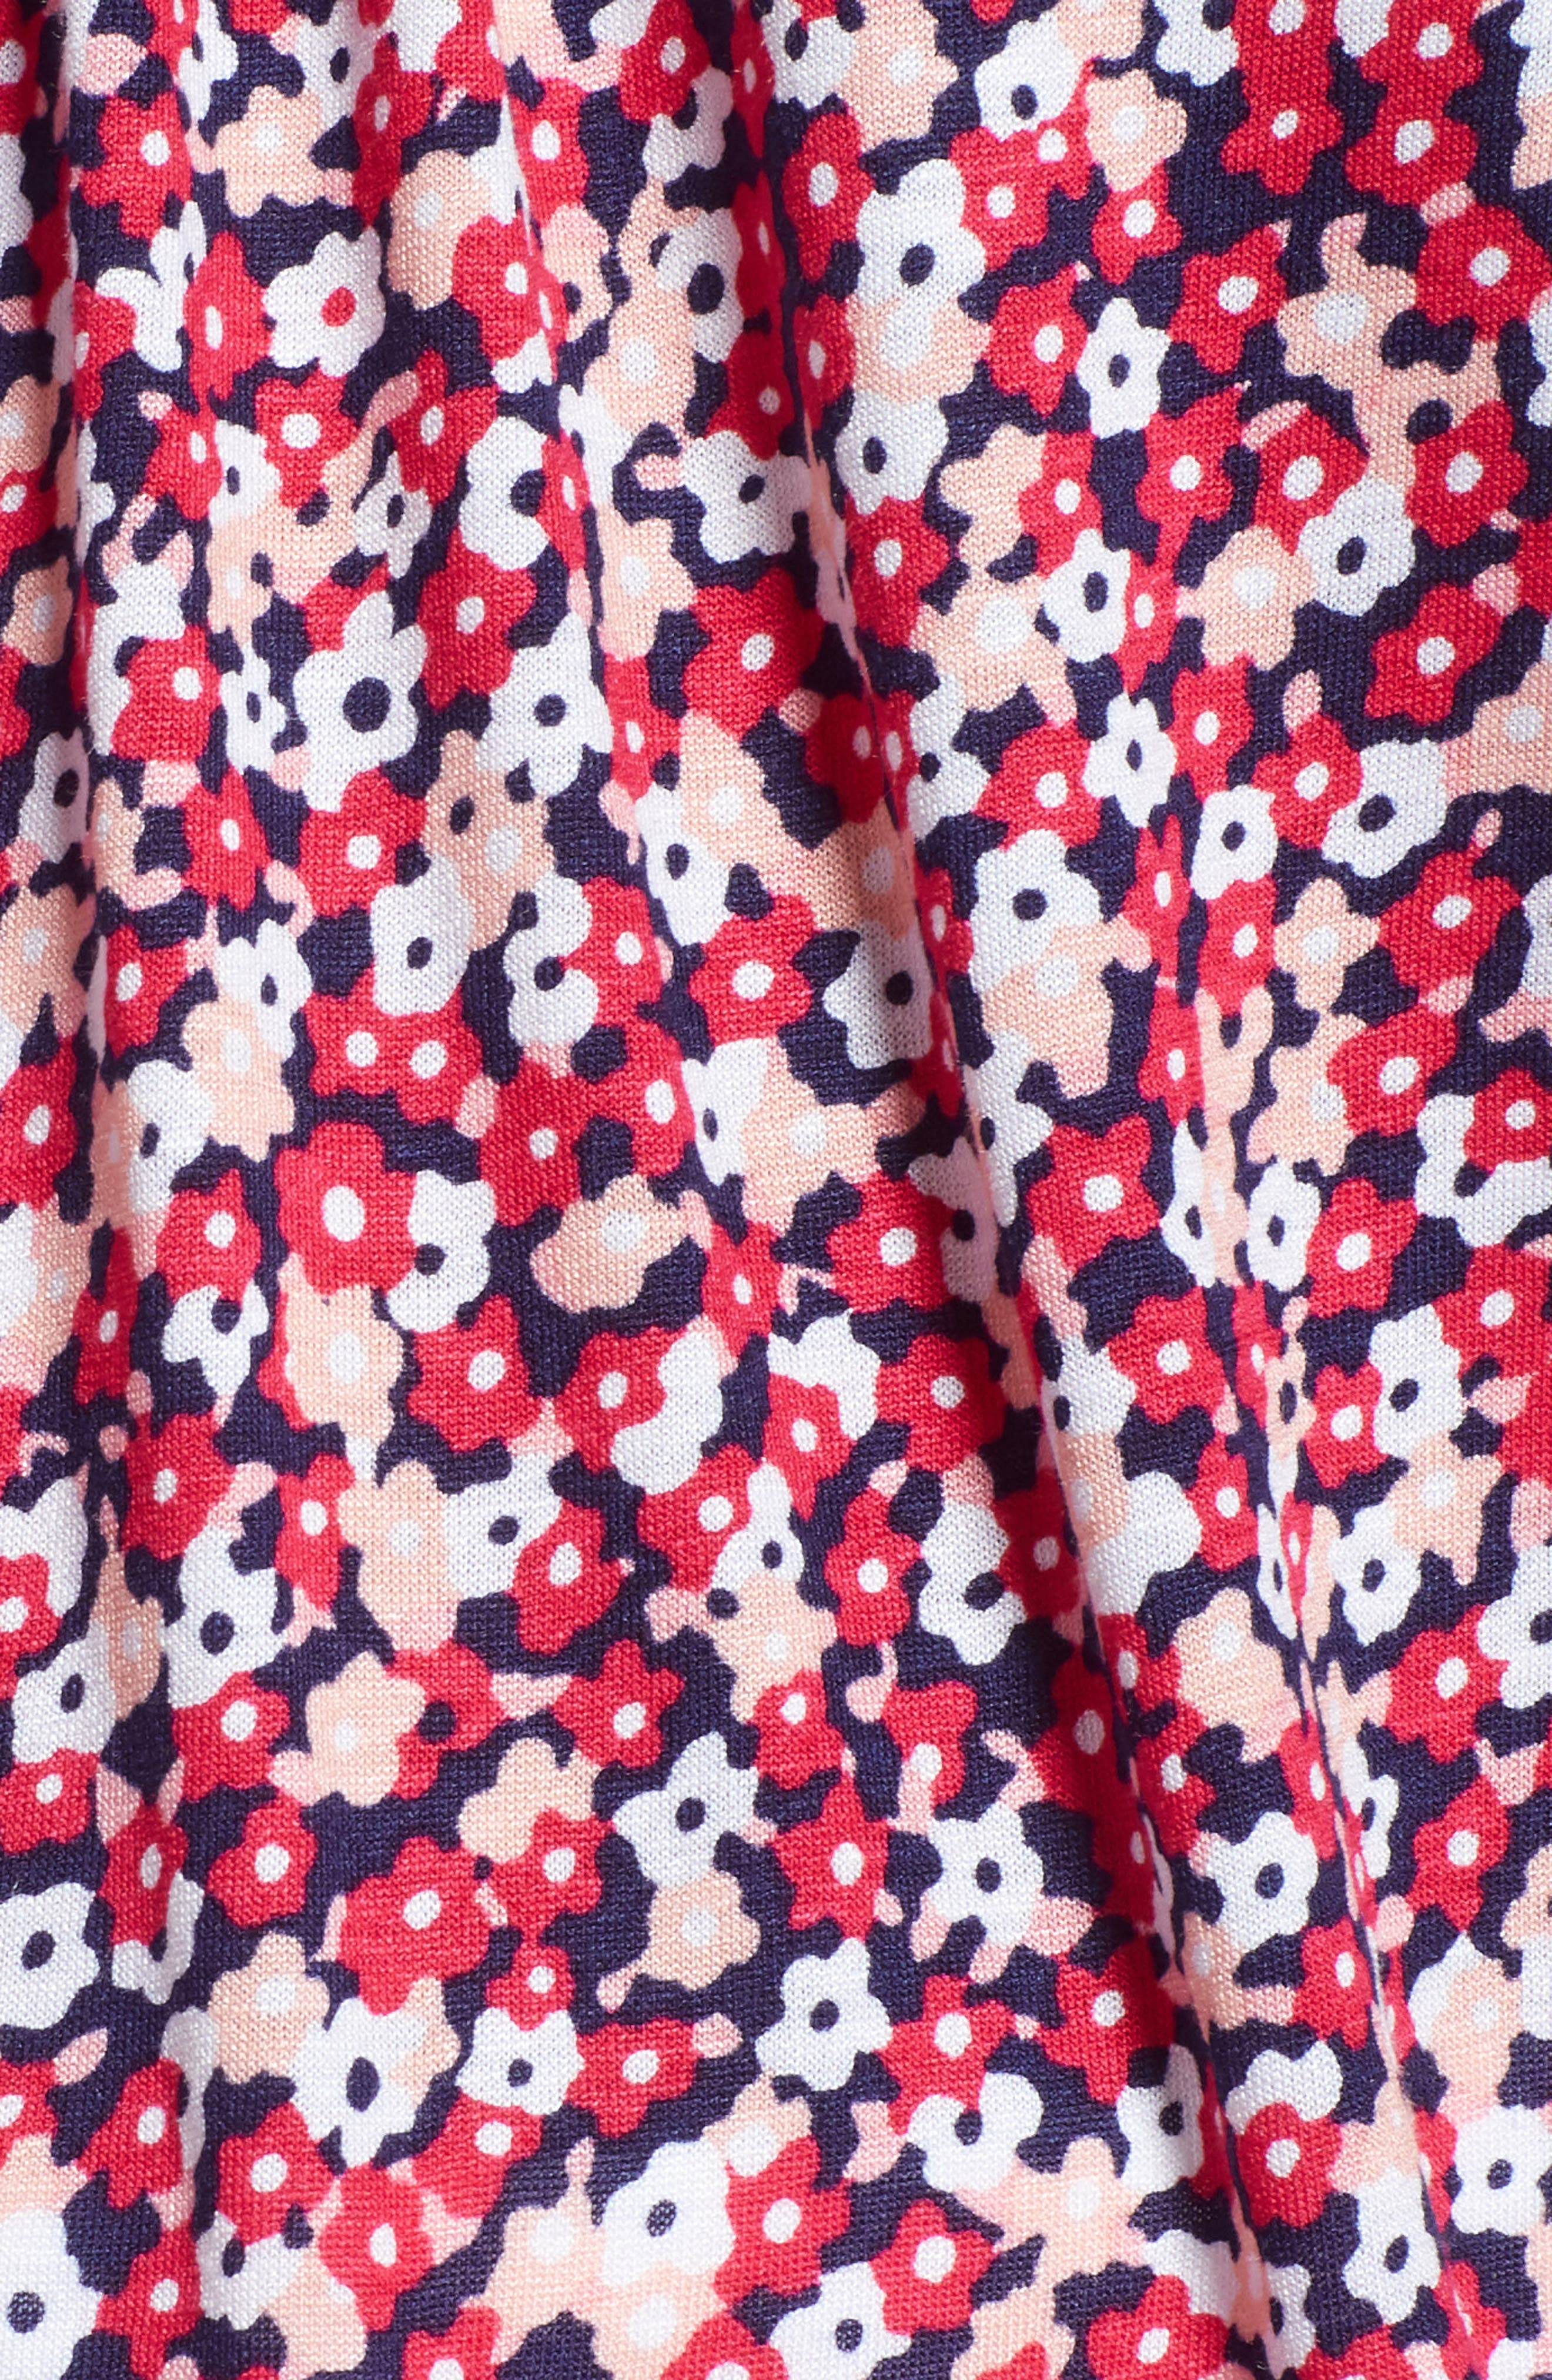 Collage Floral Print Peasant Top,                             Alternate thumbnail 6, color,                             True Navy/ Bright Blush